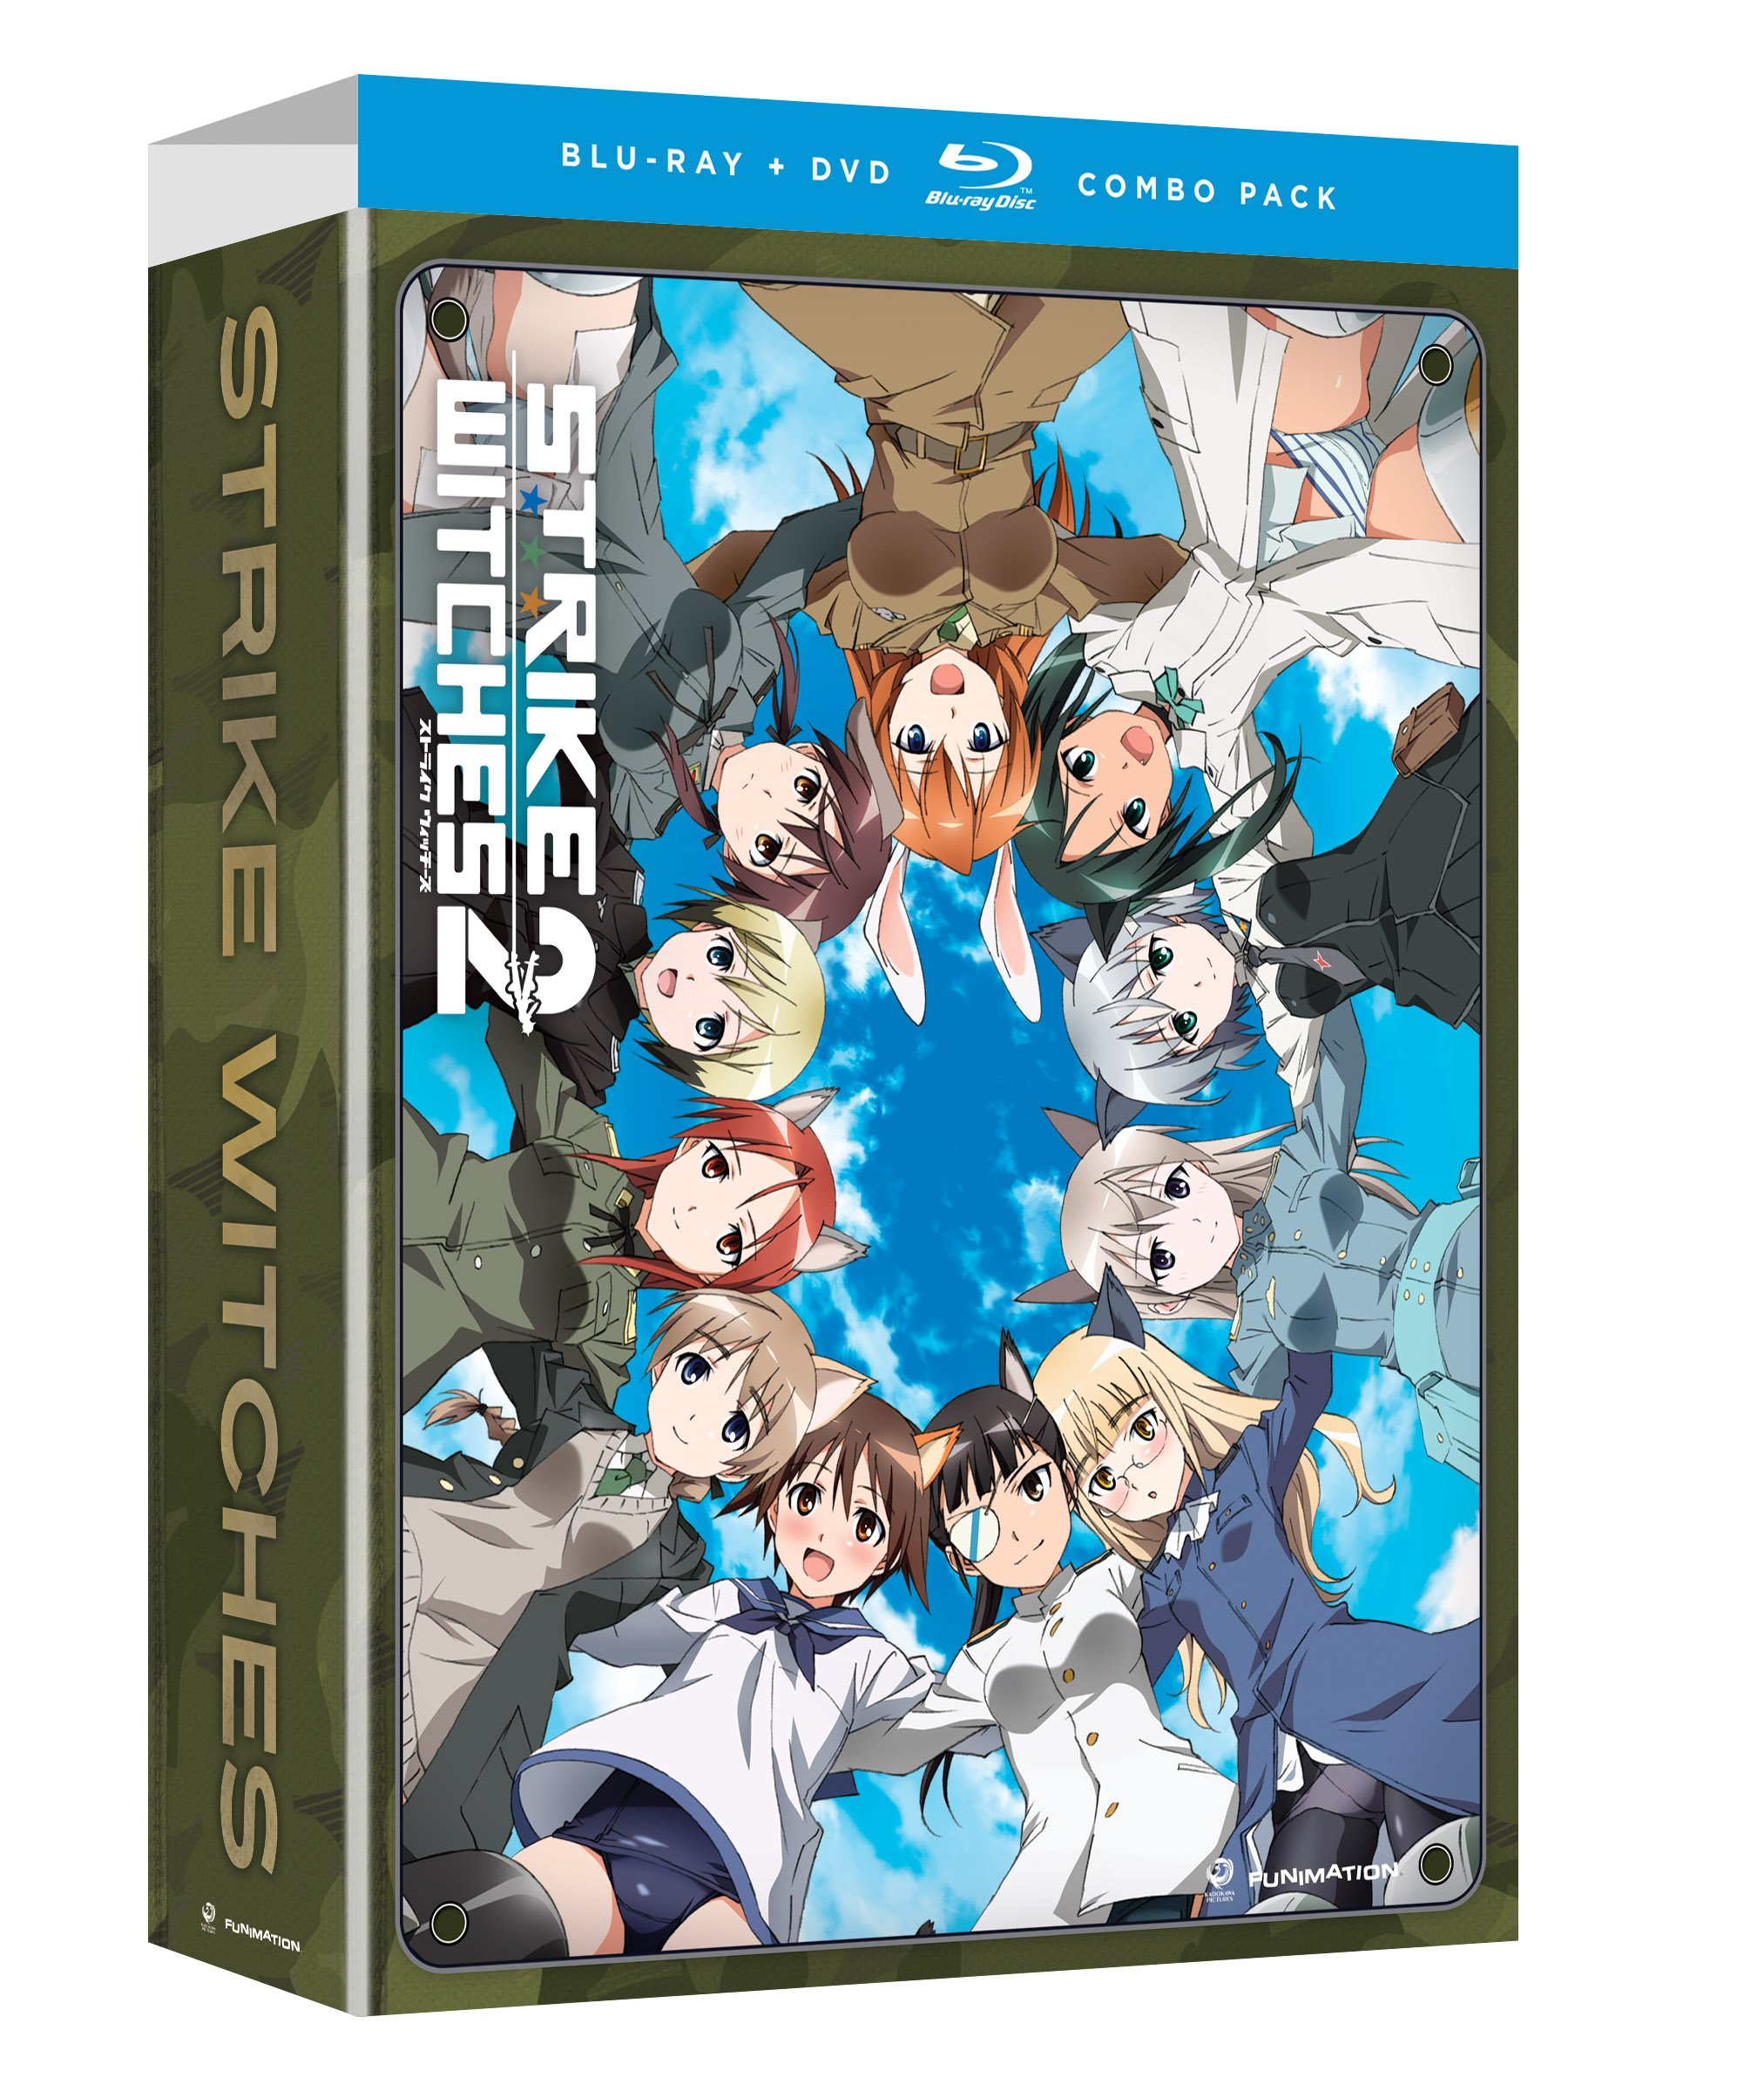 Strike witches season 2 collection limited edition blu ray disc